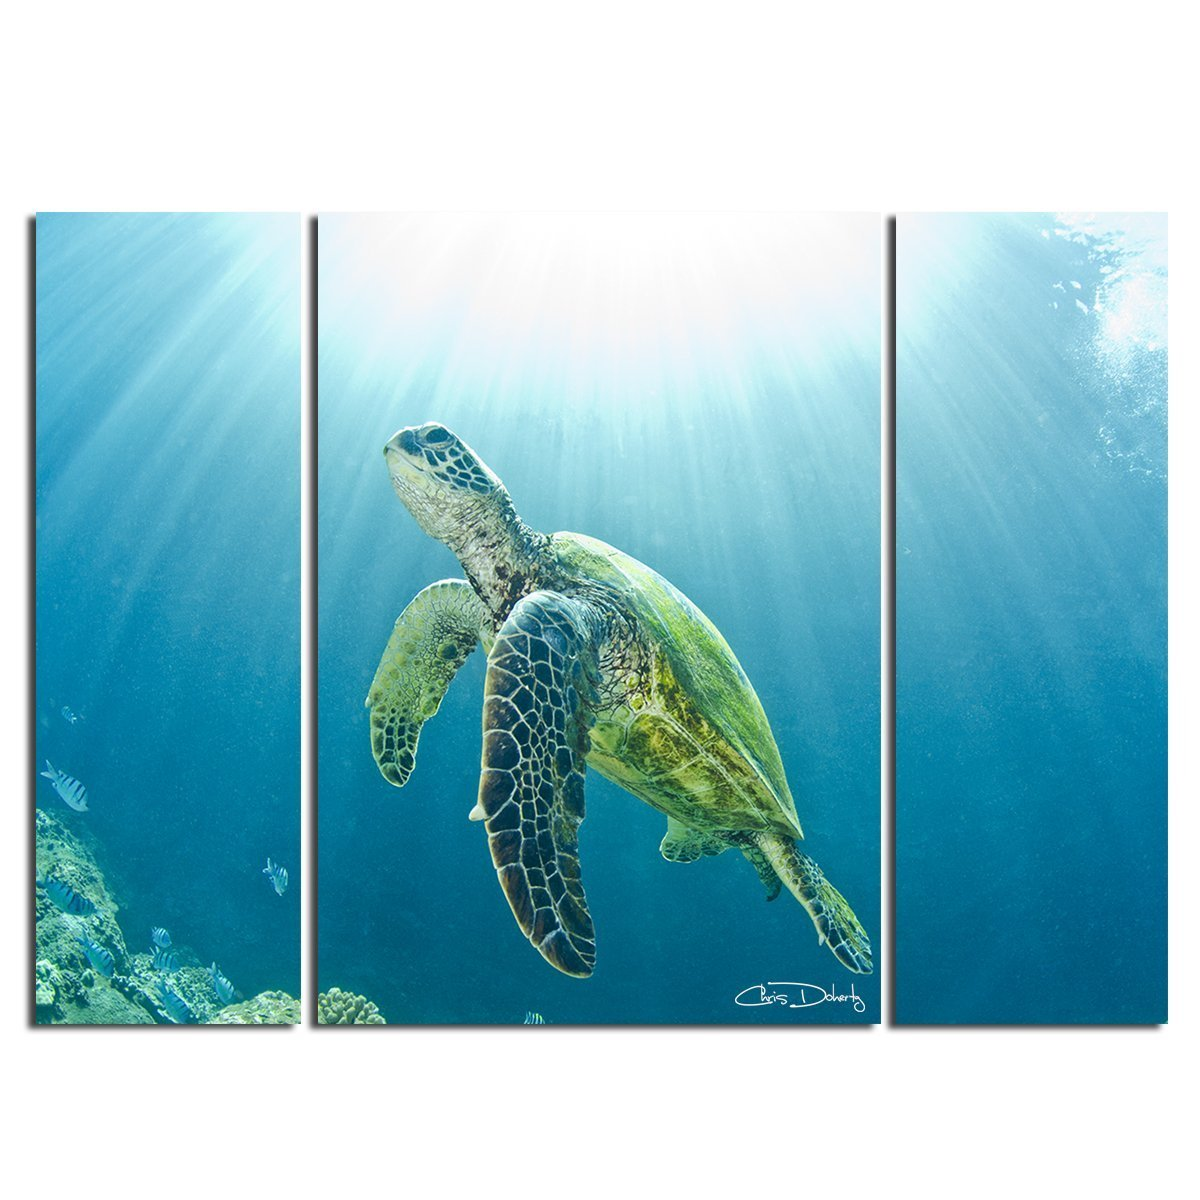 30 x 40 Blue Overall Overall Ready2HangArt Sea Turtle Realism Contemporary Photograph Wall Art Print 30 x 40 DSC9395-GWC3040TP